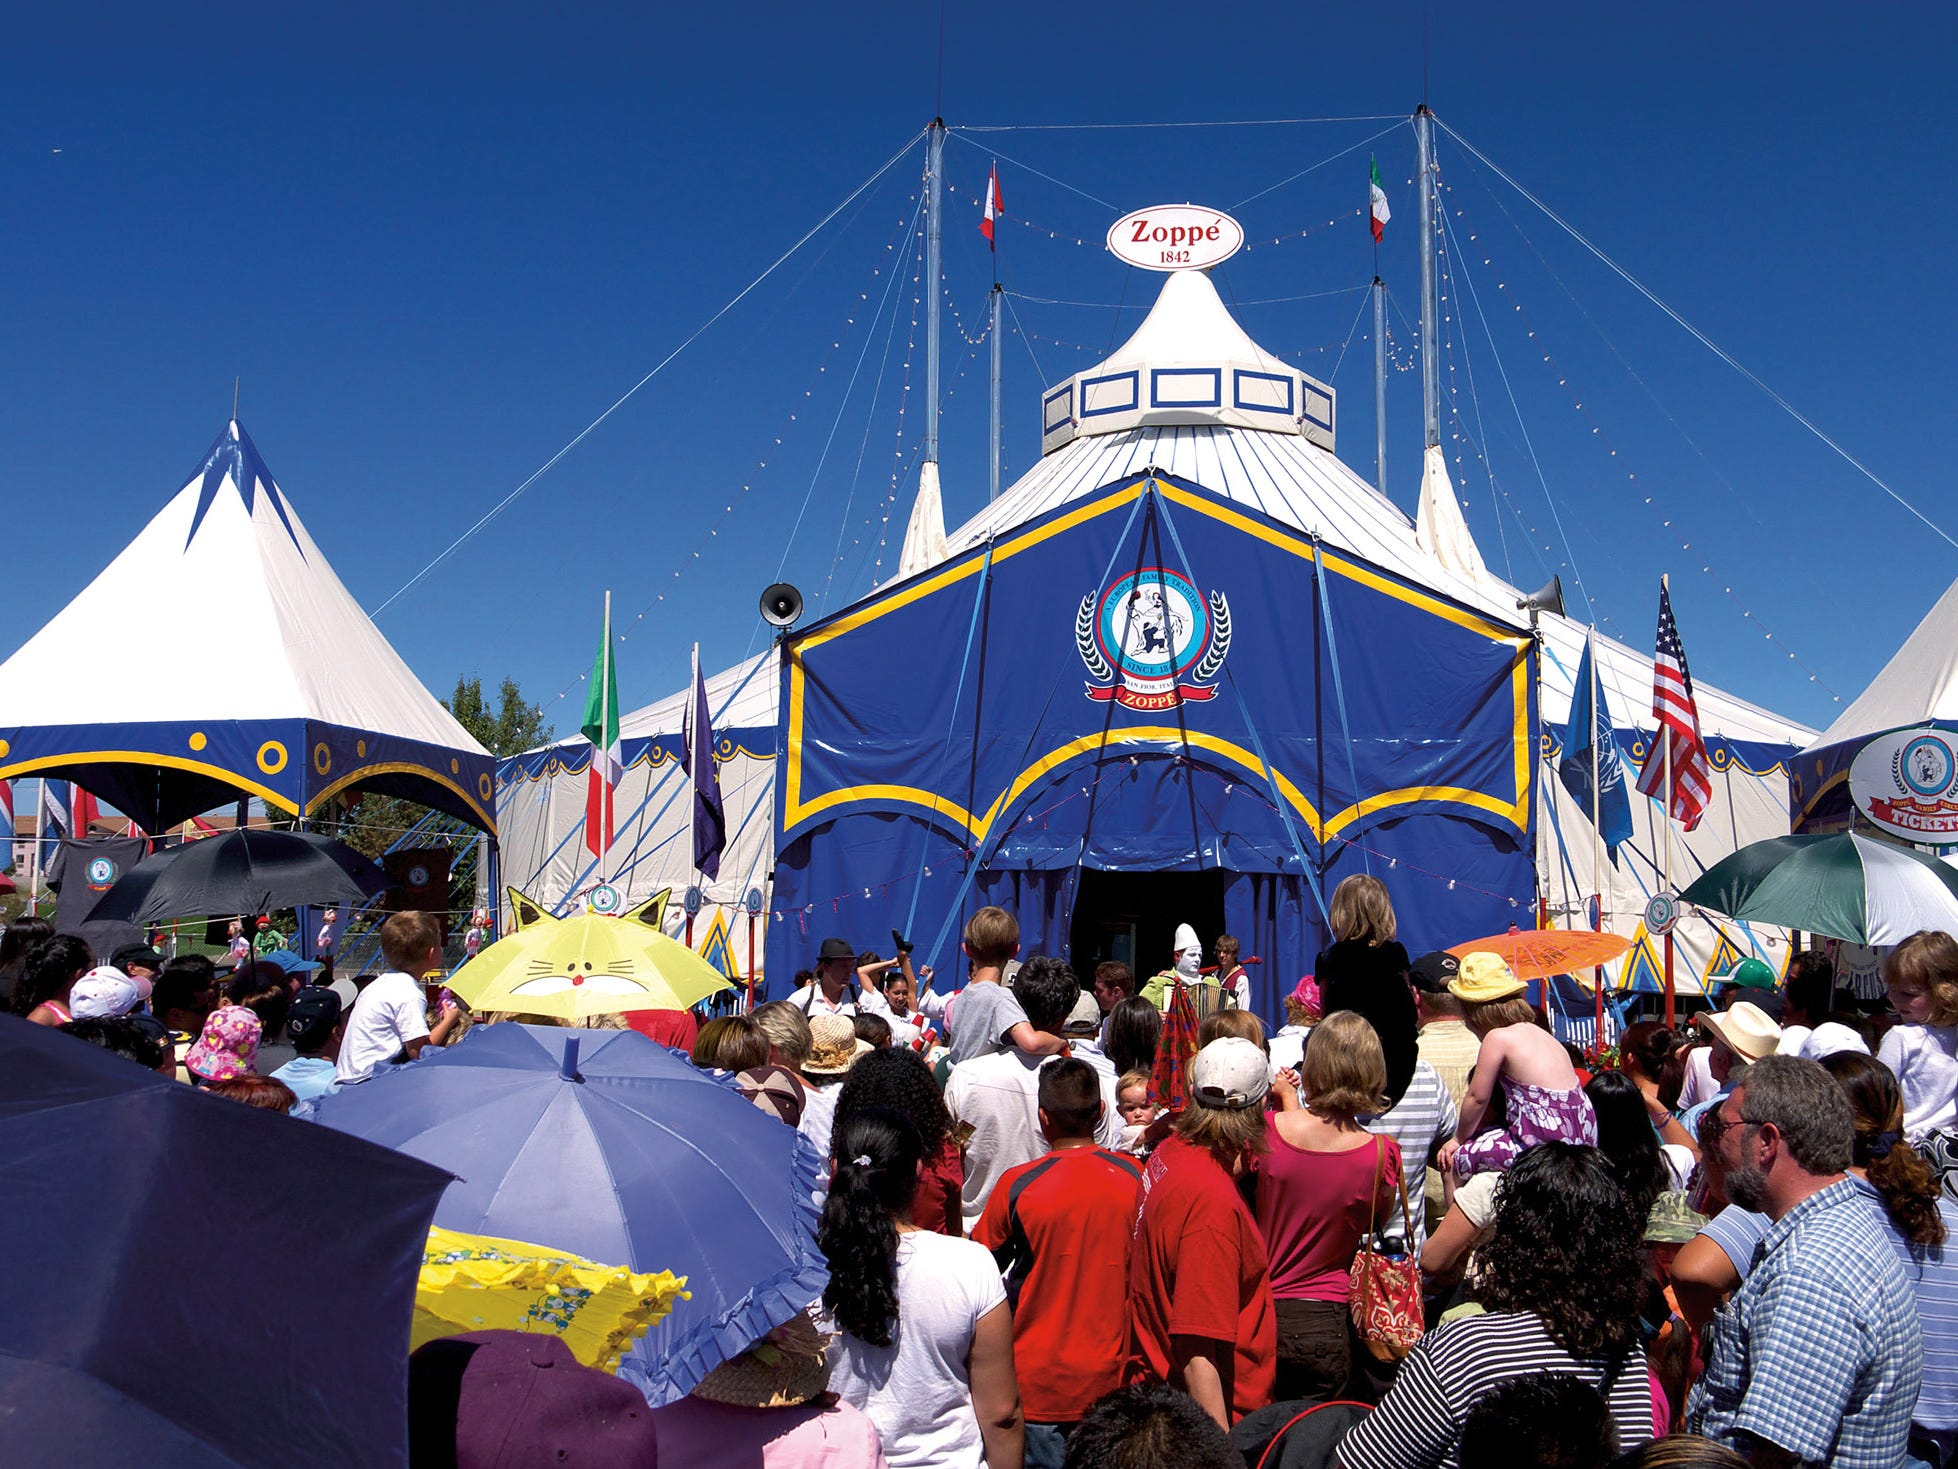 Zoppe: An Italian Family Circus offers a traditional, European-style circus.